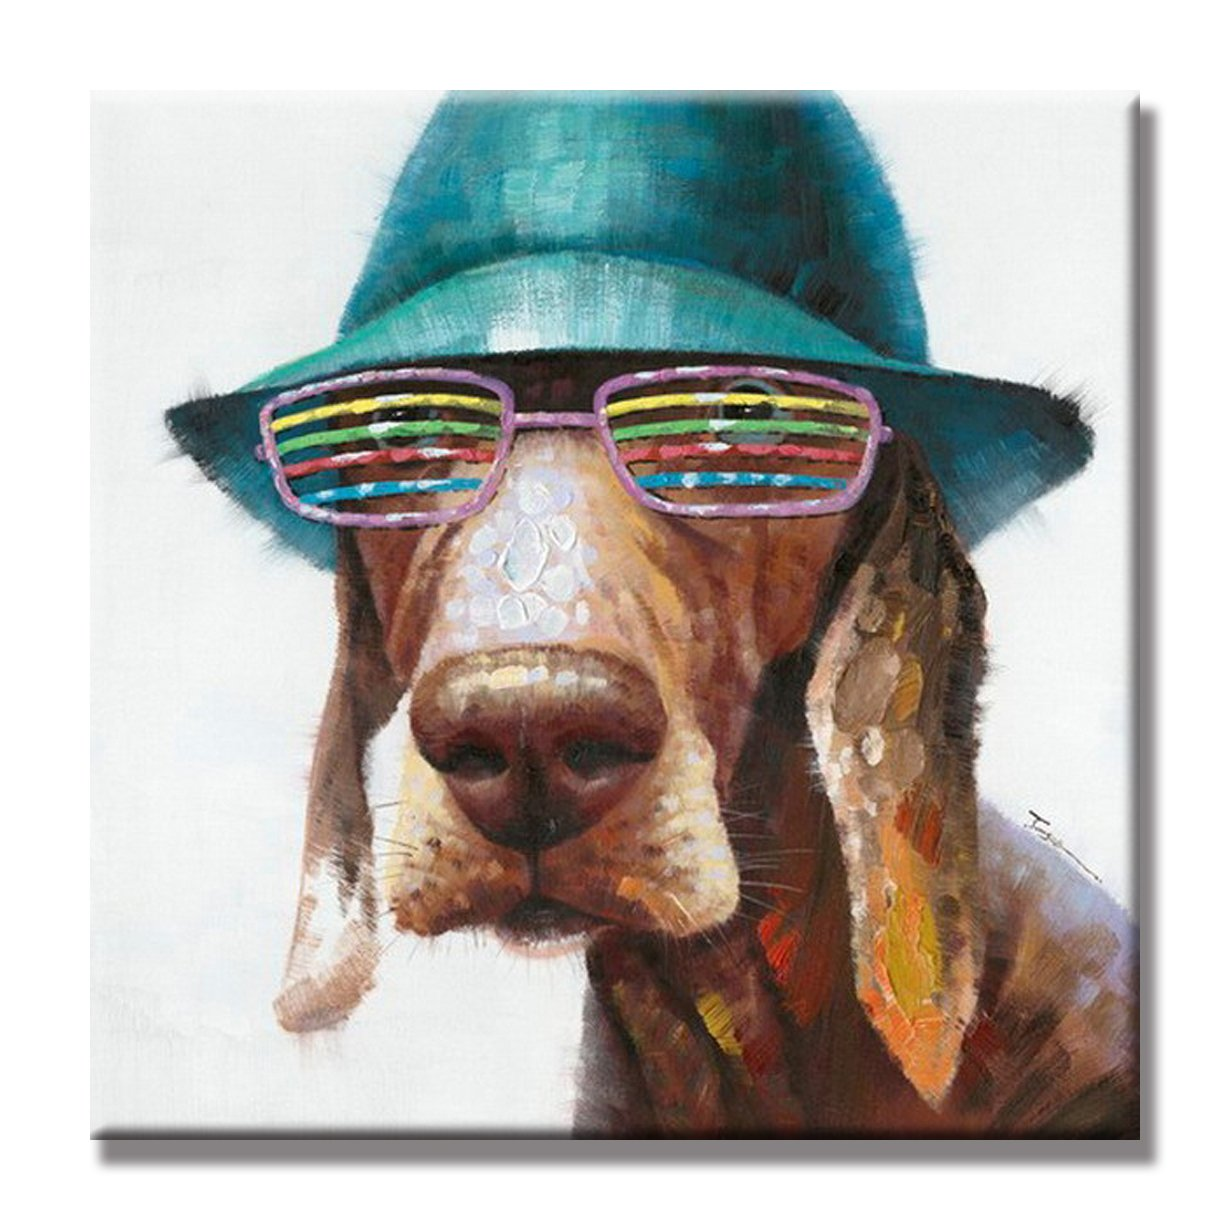 SEVEN WALL ARTS - 100% Hand Painted Oil Painting Animal Cute Dog Wears Colorful Glasses with Stretched Frame 24 x 24 Inch by SEVEN WALL ARTS (Image #1)